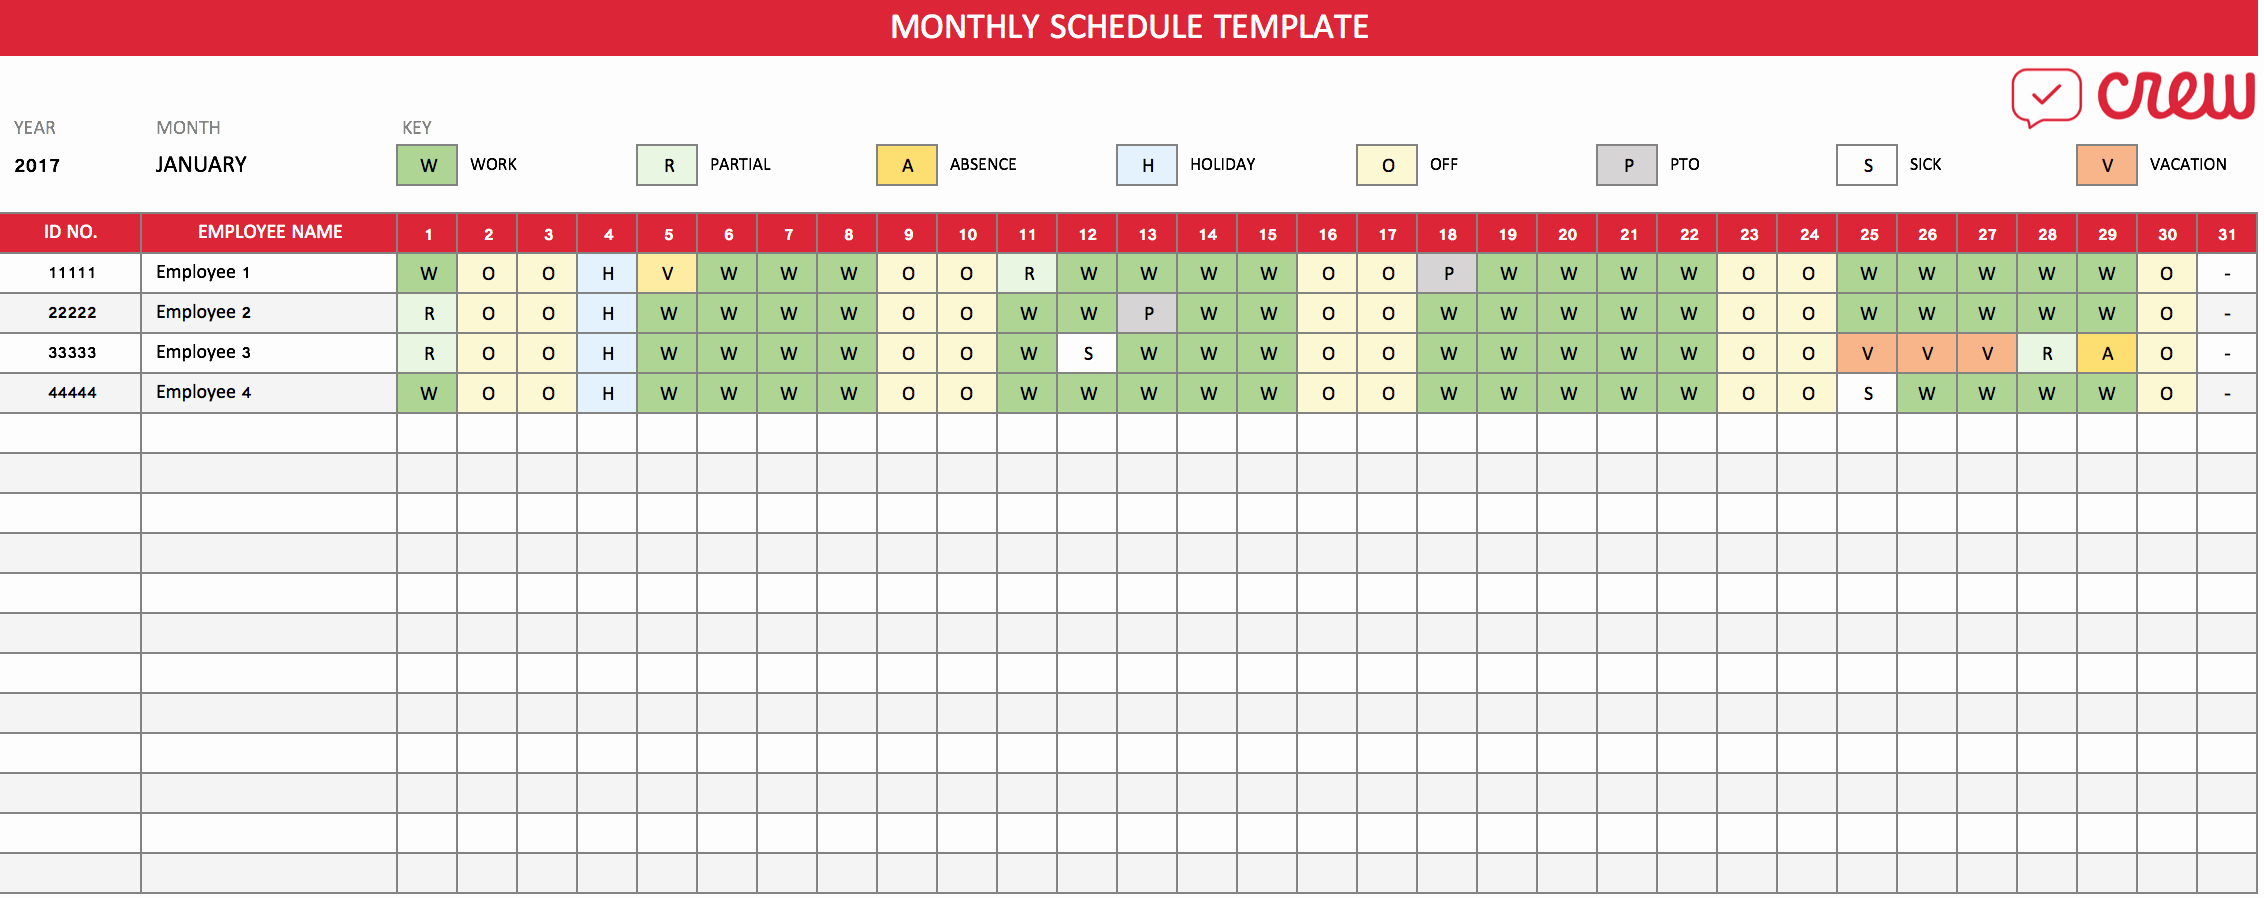 Monthly Work Schedule Template Best Of Free Monthly Work Schedule Template Crew